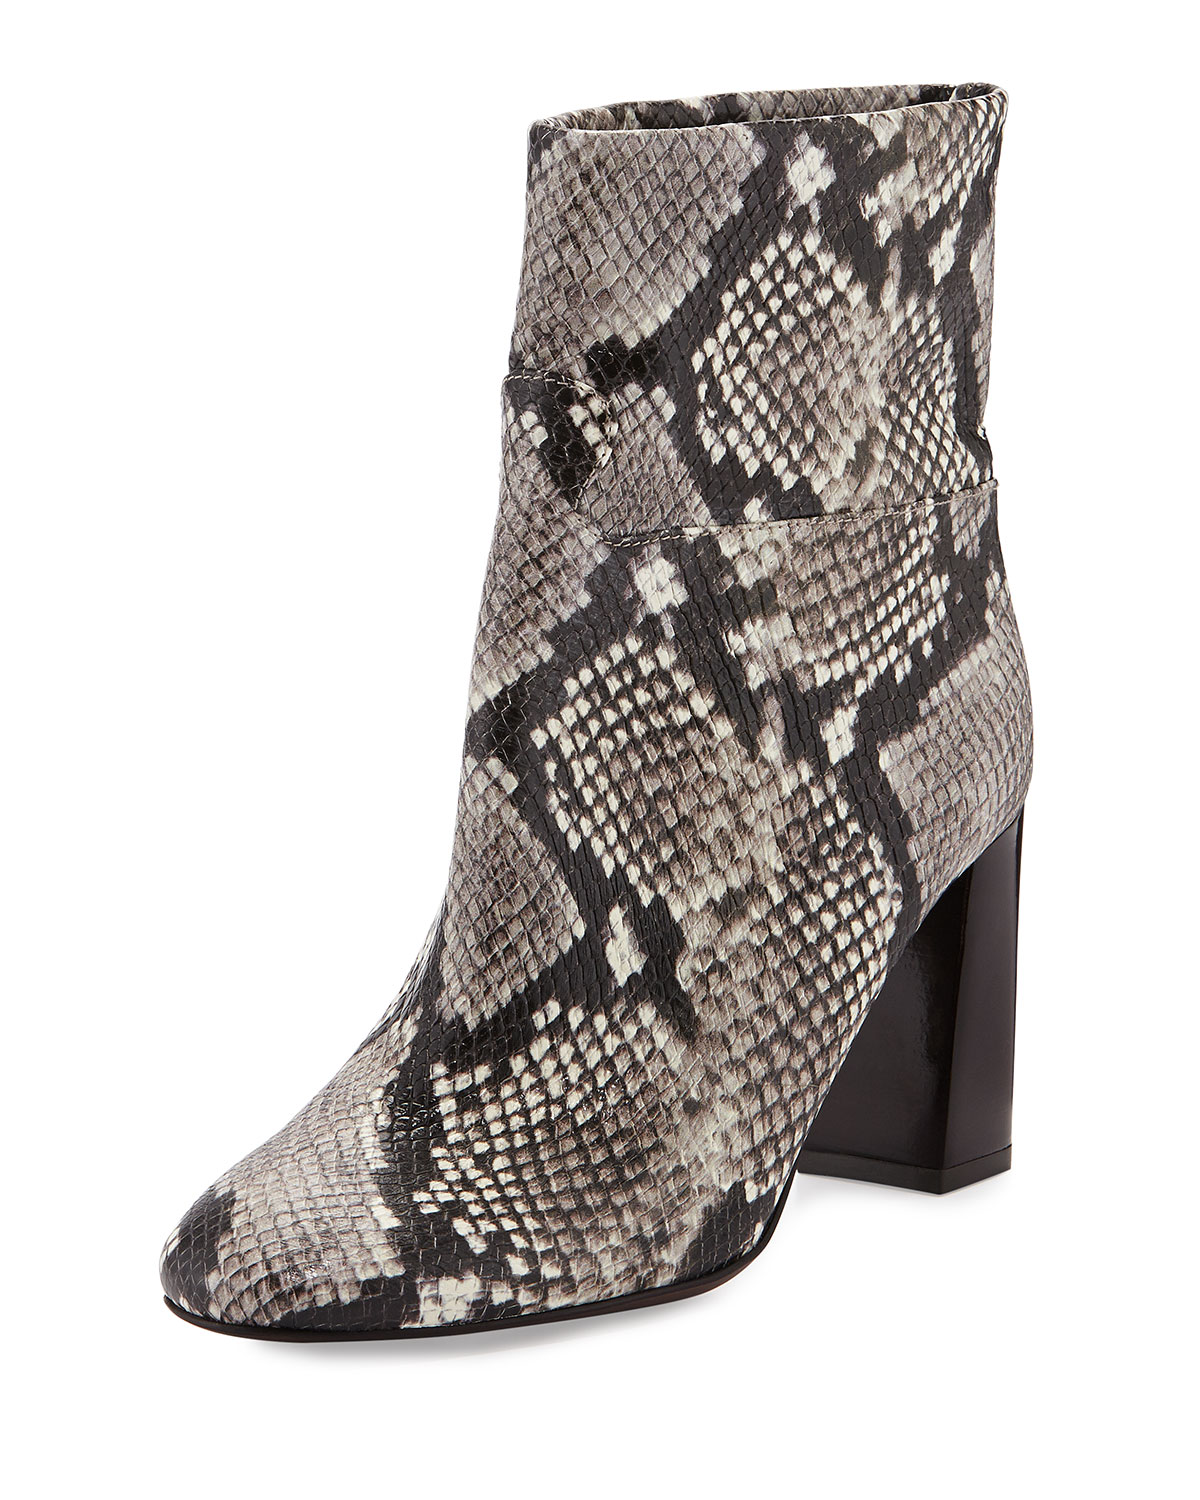 ea40d5d3c Tory Burch Devon Snake-Print Leather Boot